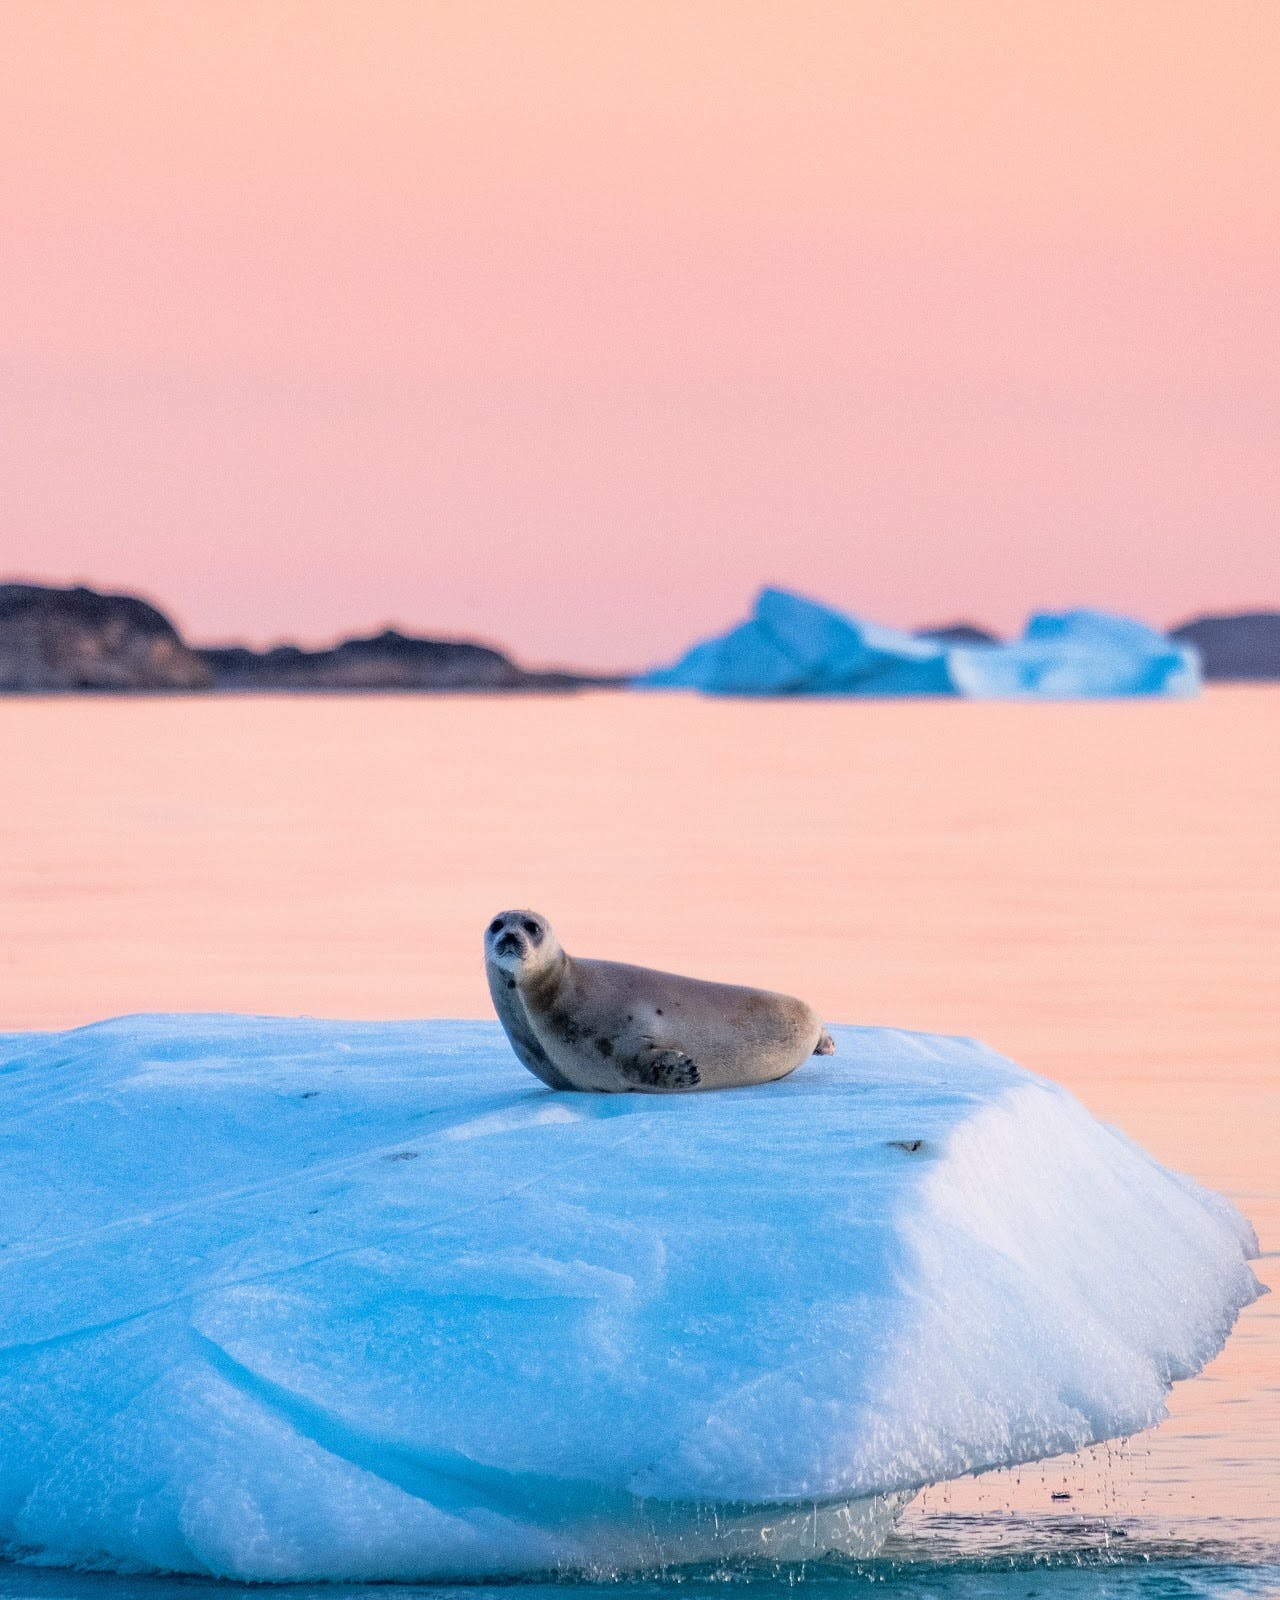 The first time I saw a seal resting on an Iceberg